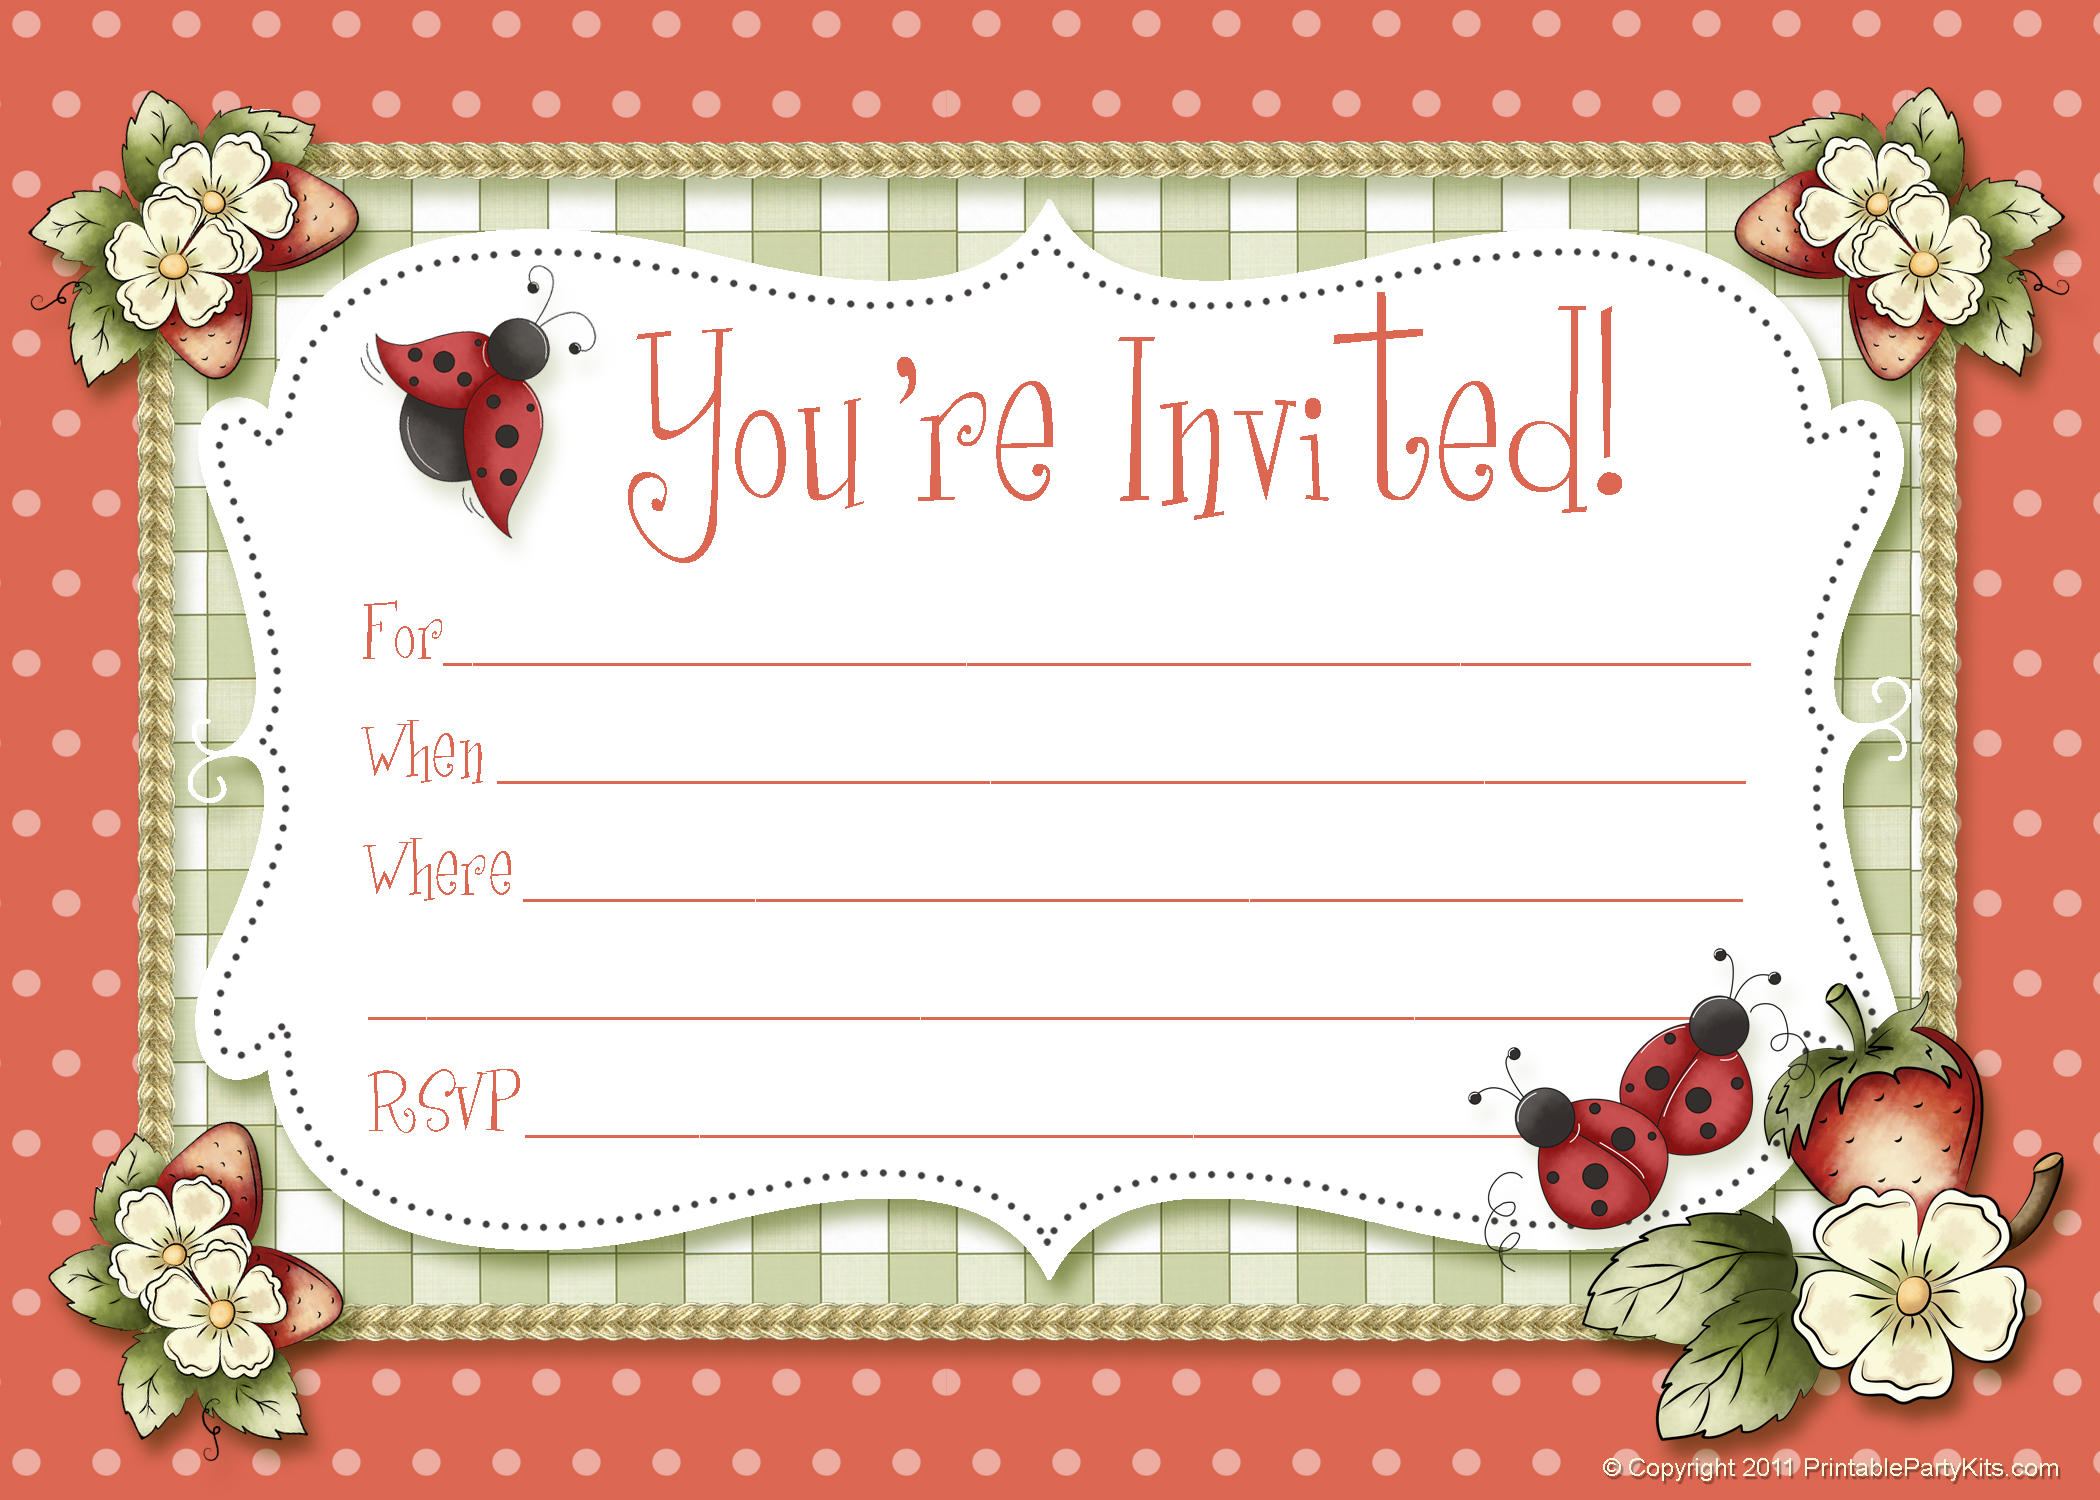 summer printable party kits ladybug party invitations